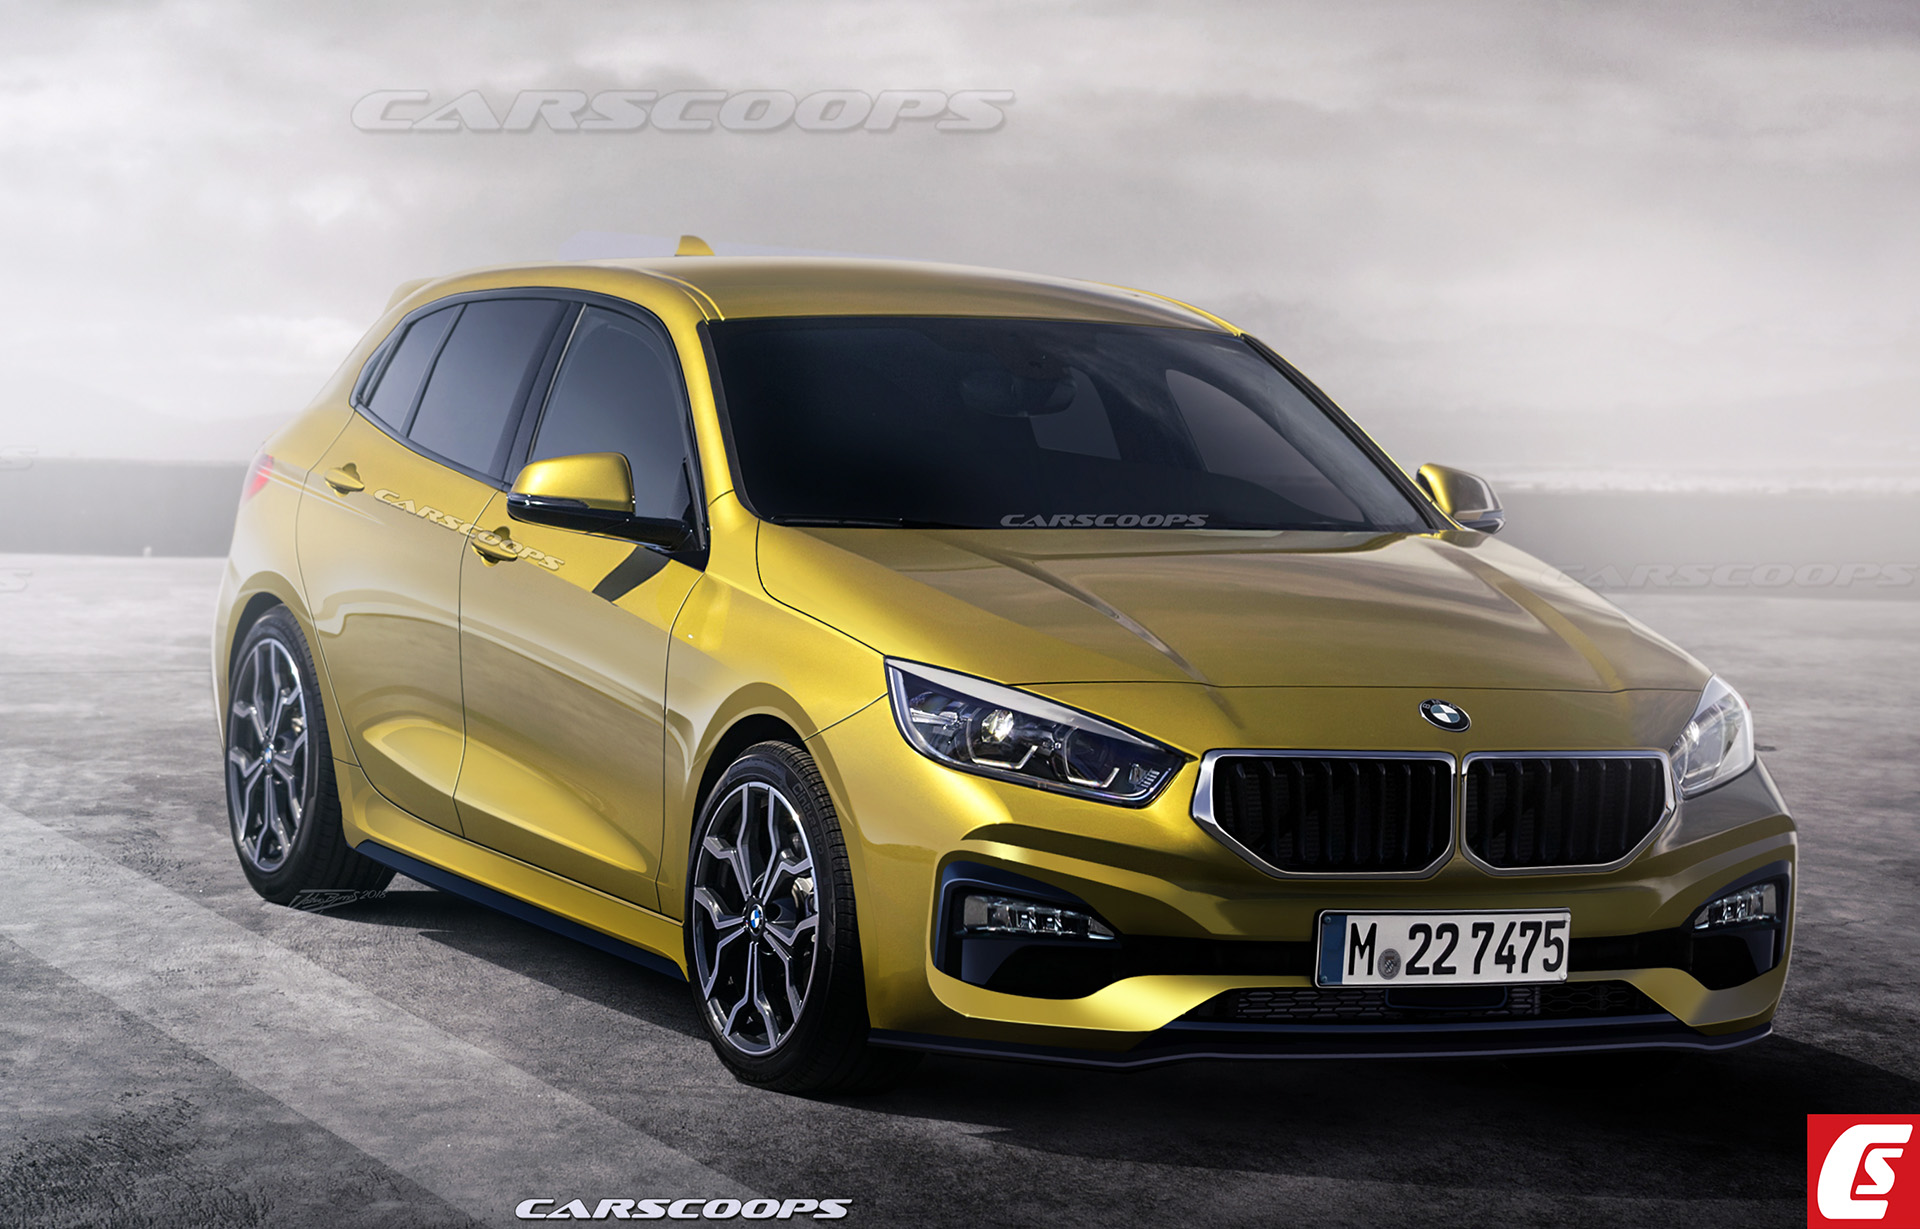 Bmw 1 Series New Model Release Date >> New 2019 Bmw 1 Series Hatch What It Will Look Like And Everything